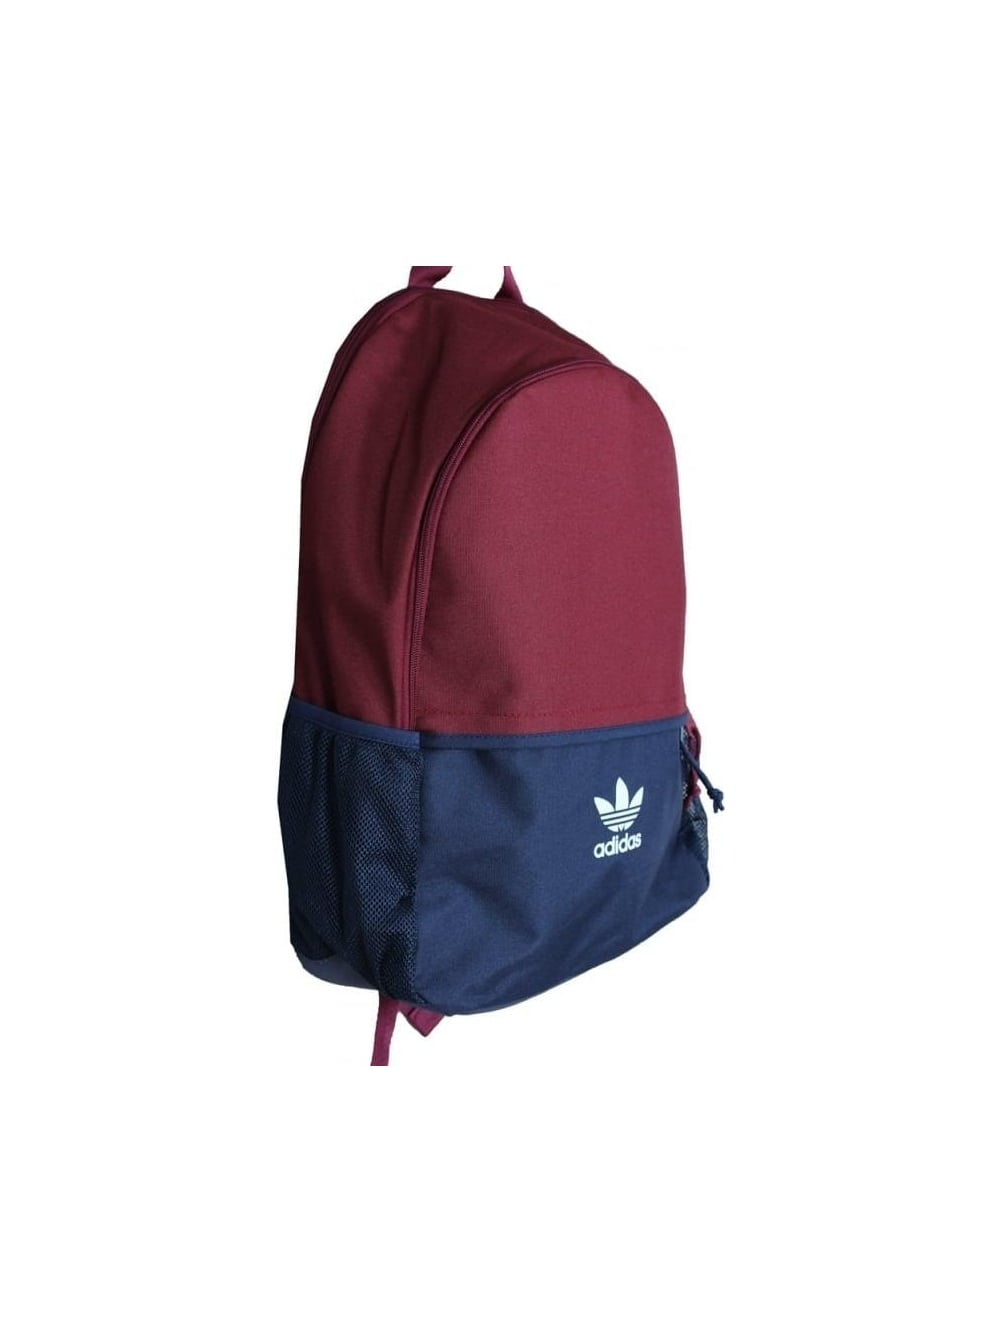 be0da5a09d ... Adidas Originals Essentials Backpack - Burgundy. Tap image to zoom. Essentials  Backpack - Burgundy